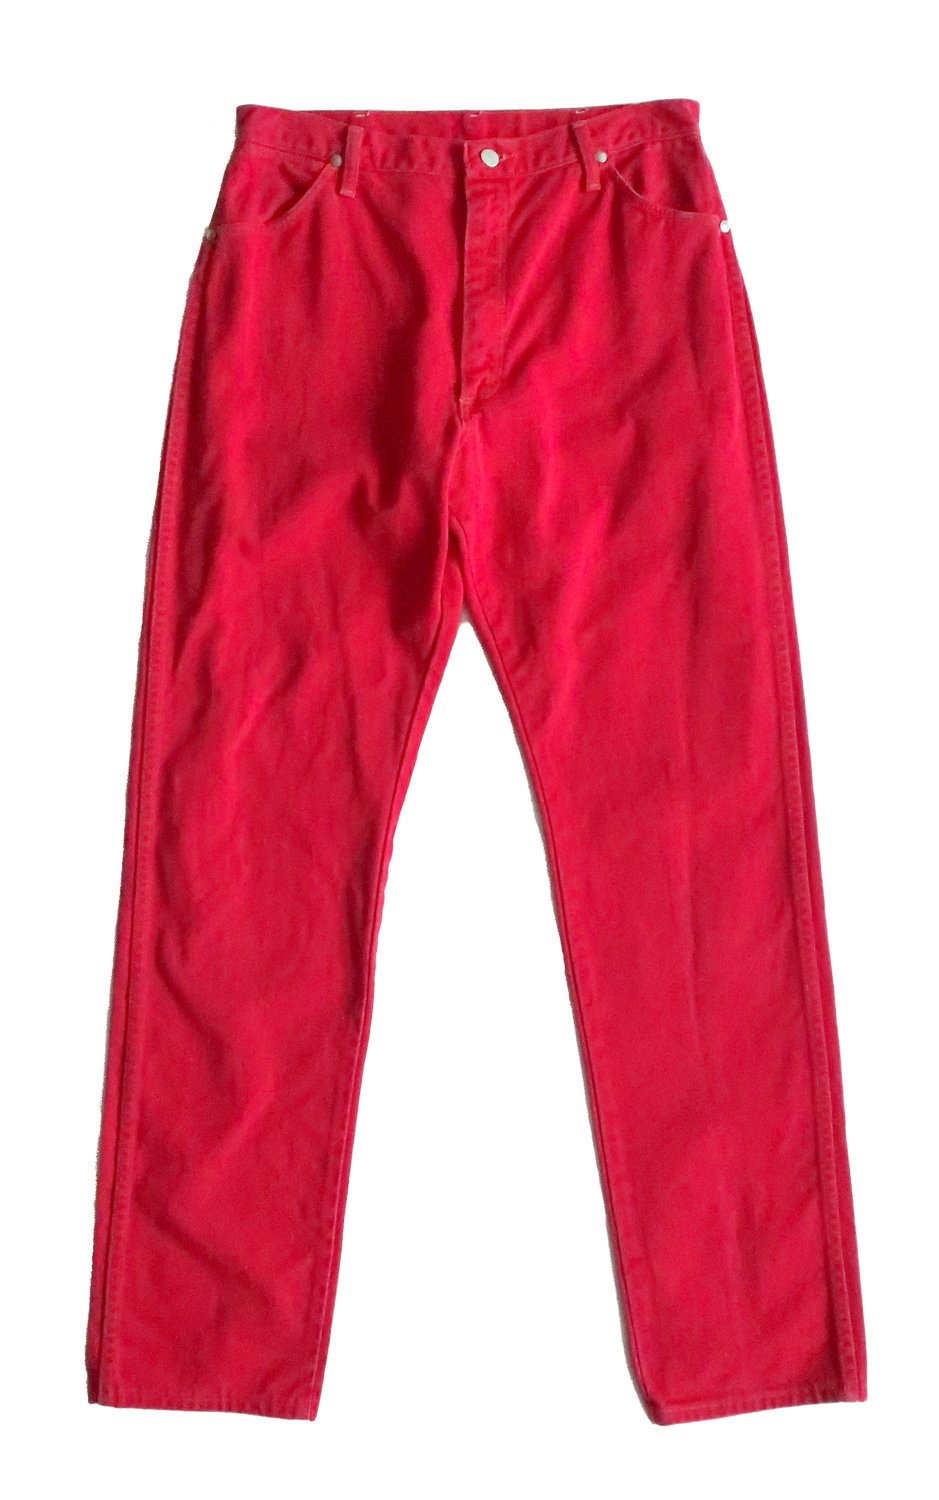 "Second Room Vintage Clothing. Vintage high waist red Wrangler mom jeans, with 13"" rise. Five pocket style with belt loops, silver hardware, zipper fly and button closure, with leather Wrangler patch on back pocket. Made in the USA. Free North American shipping on all orders."